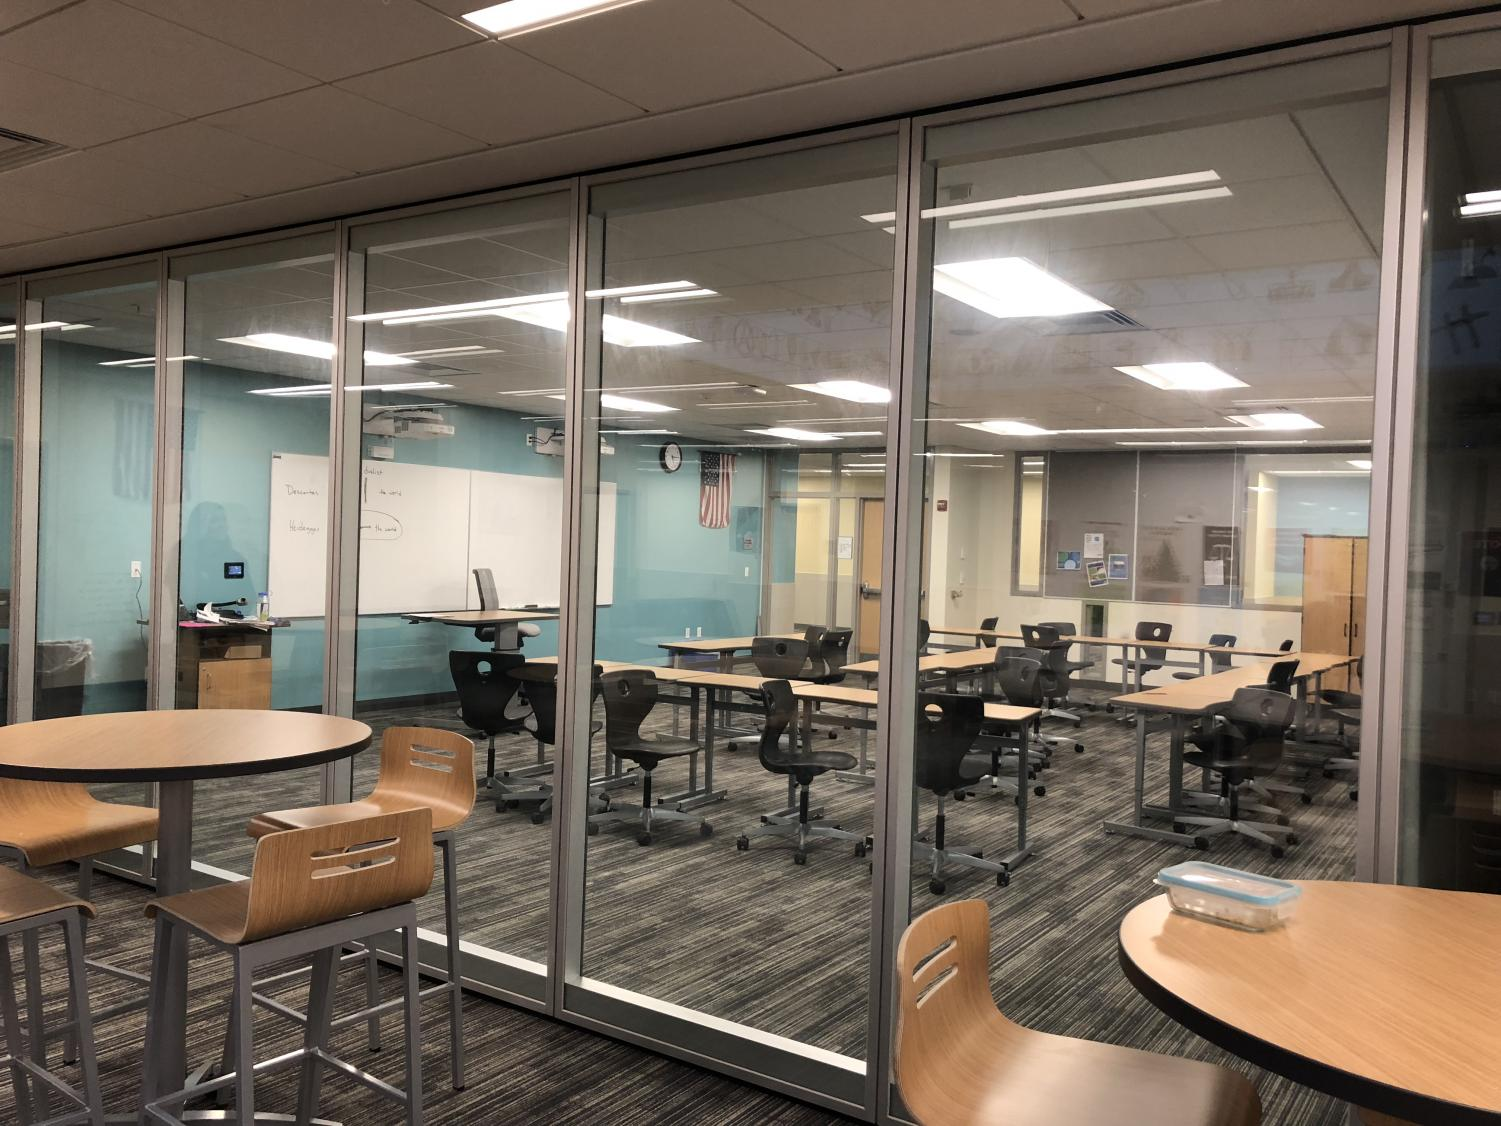 Glass classrooms have become a topic of concern regarding safety | Shoup